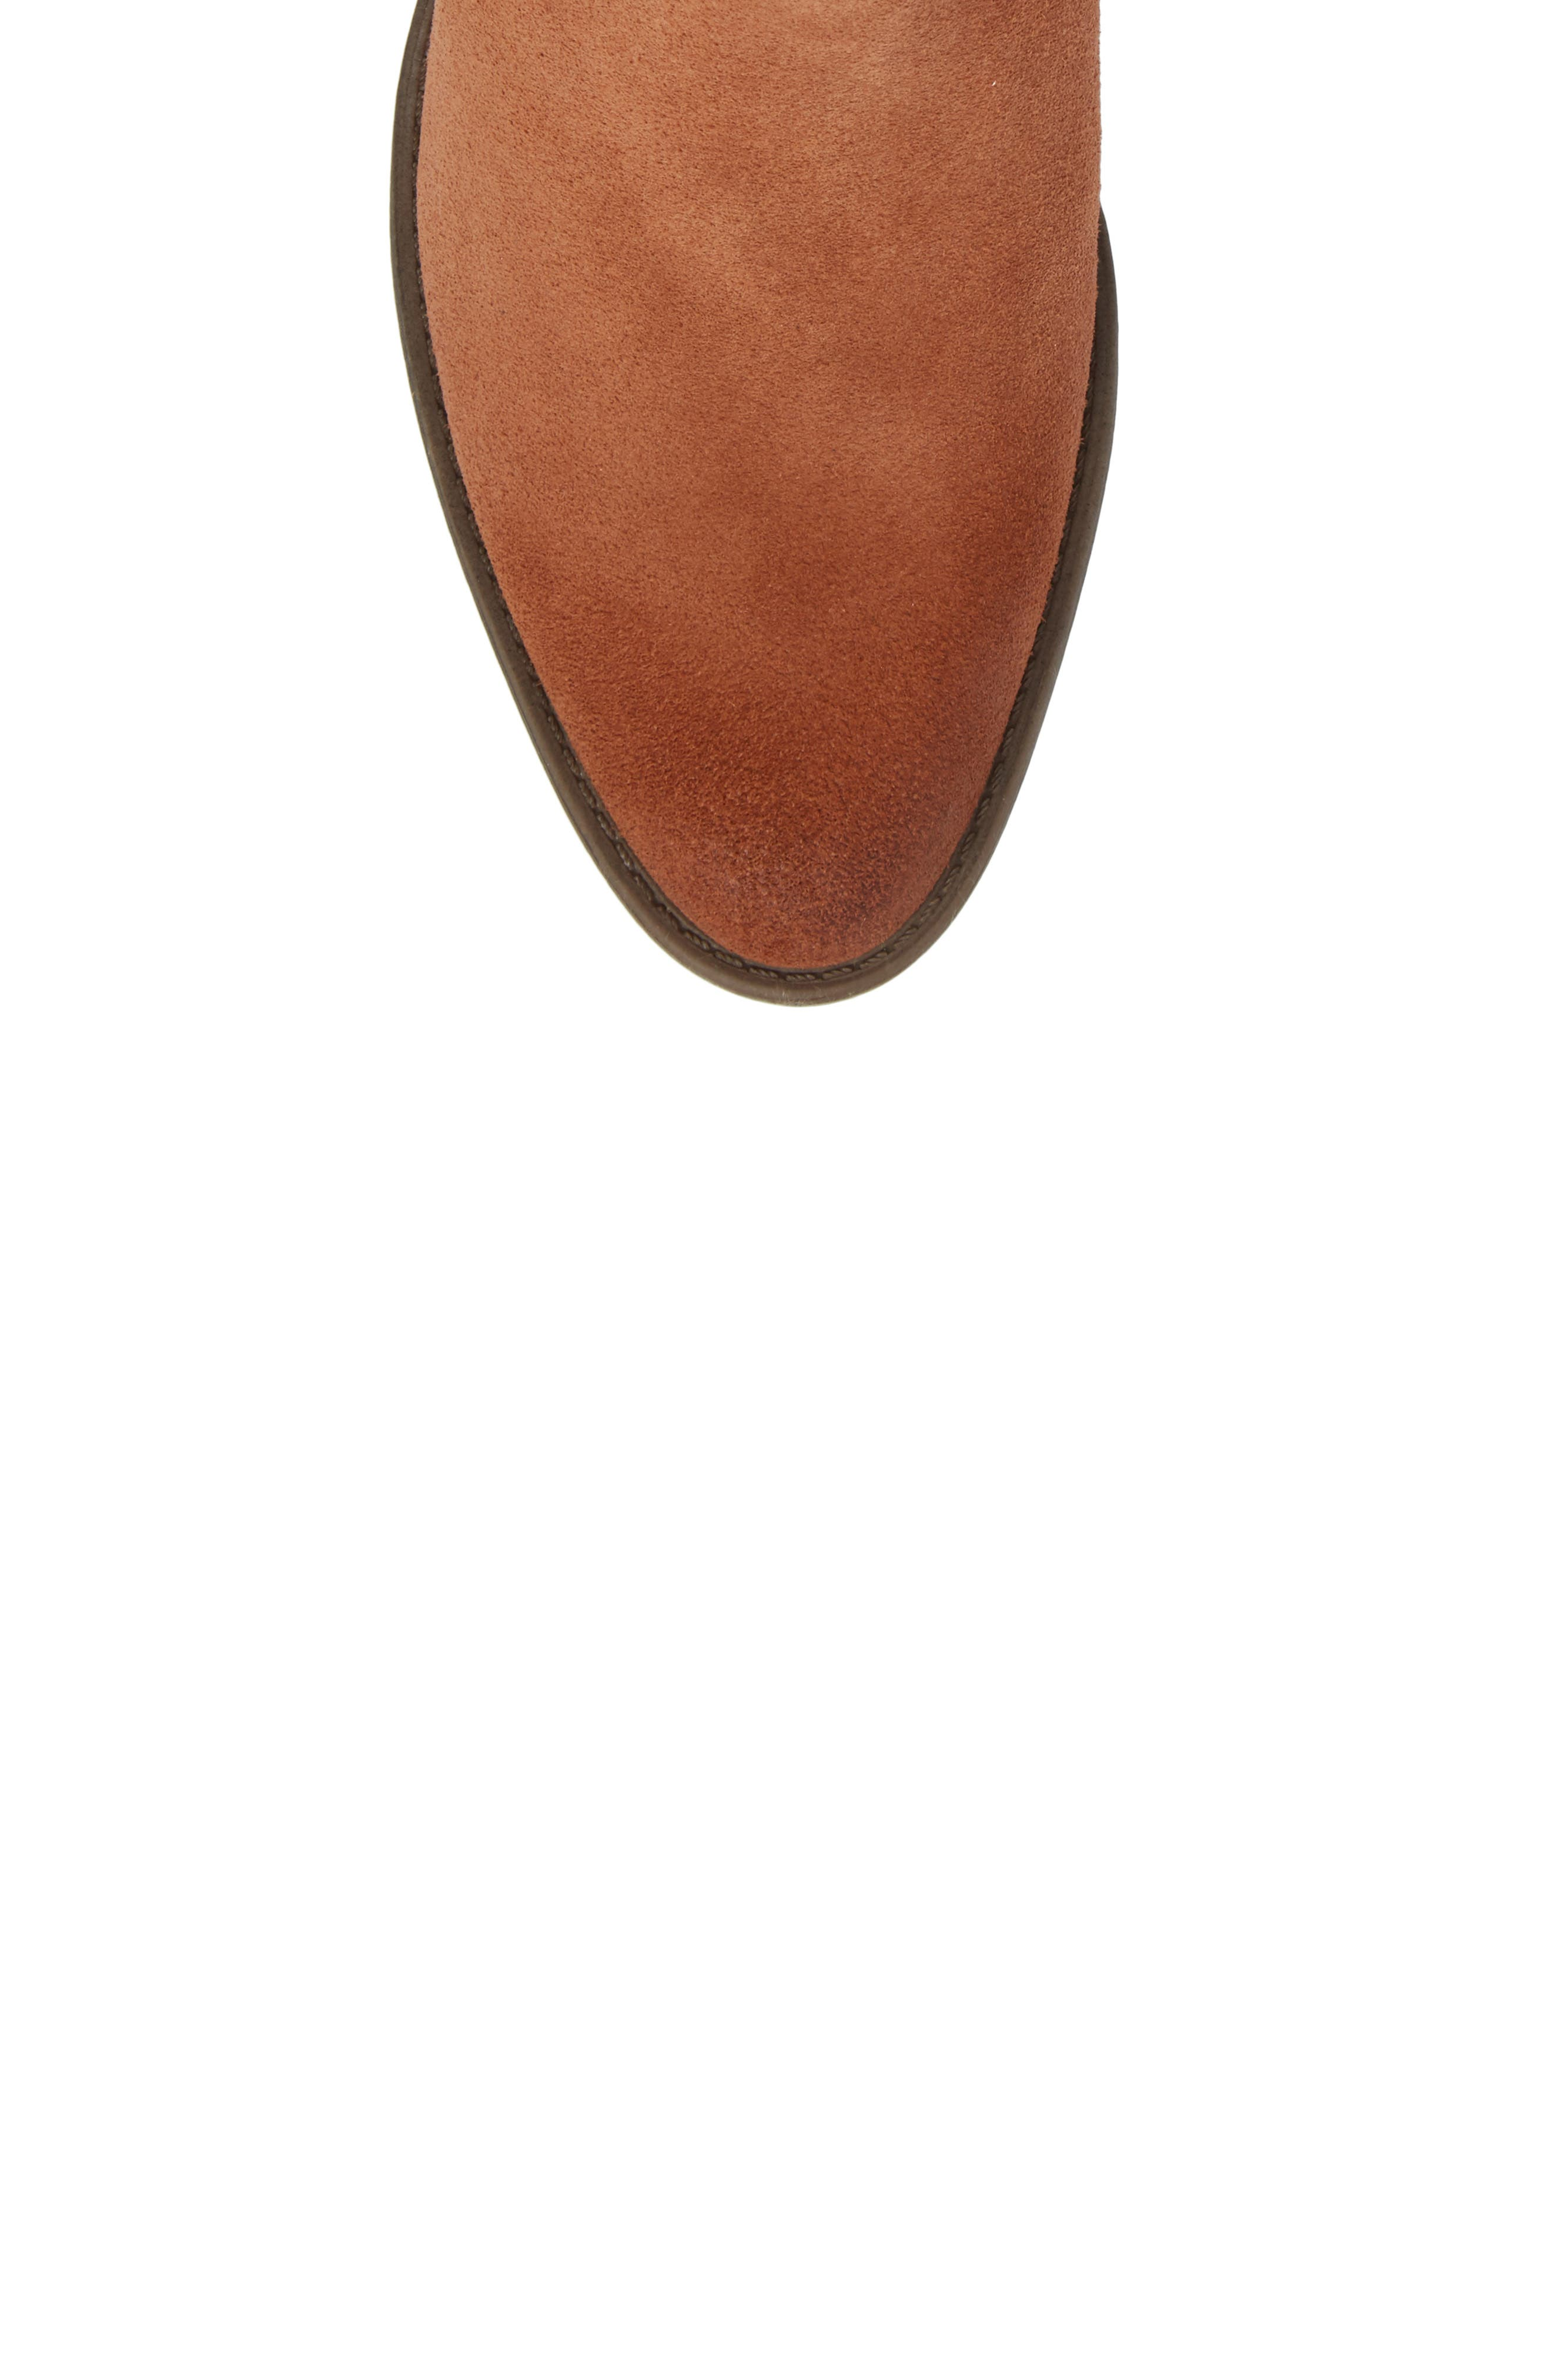 Natania Bootie,                             Alternate thumbnail 5, color,                             Toffee Suede